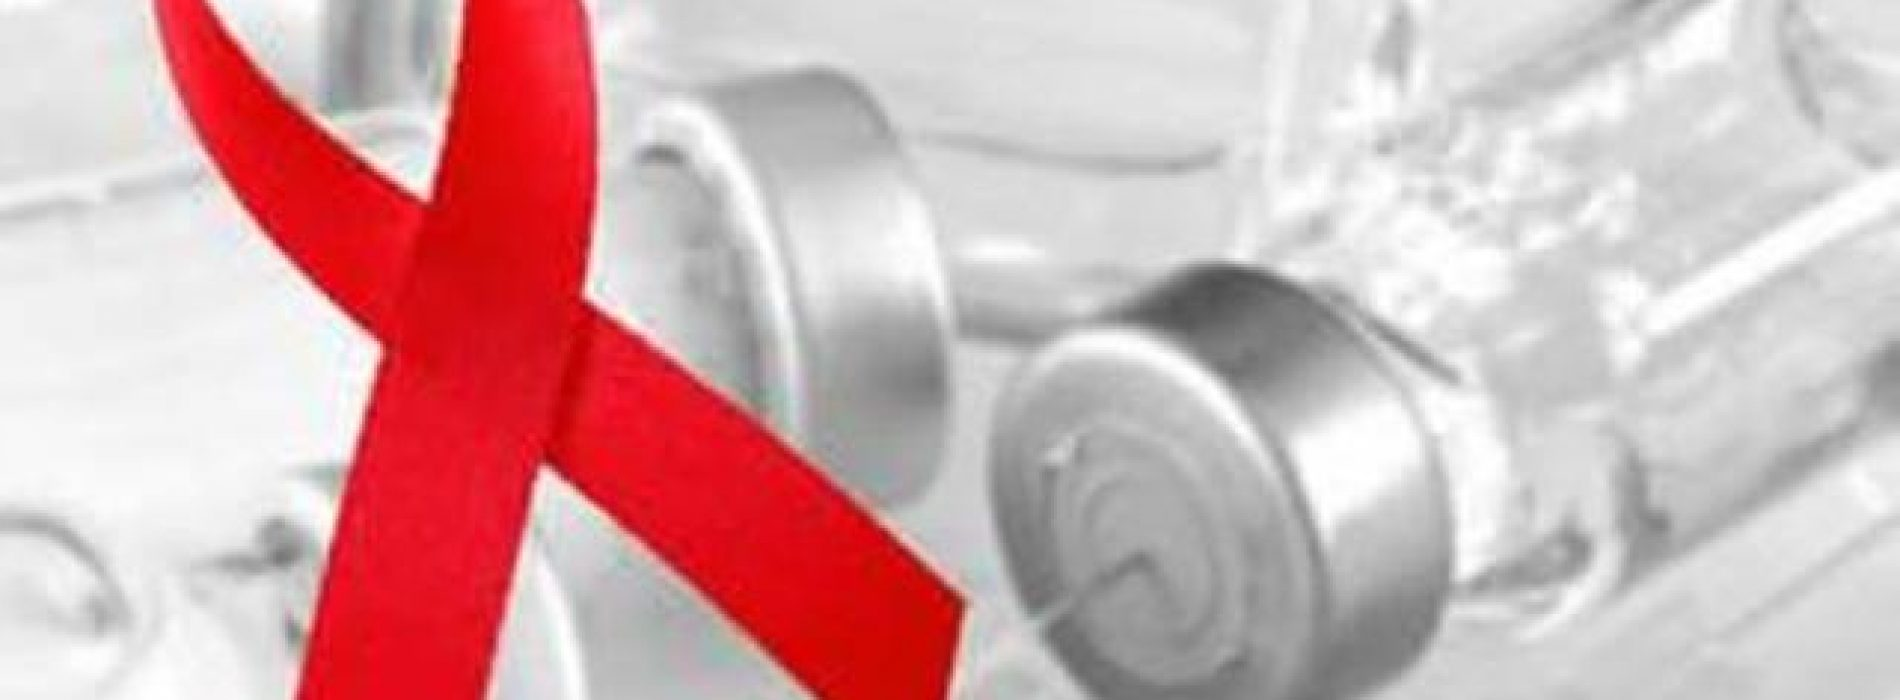 HIV Vaccine Day: Nigerian stakeholders decry government apathy towards research